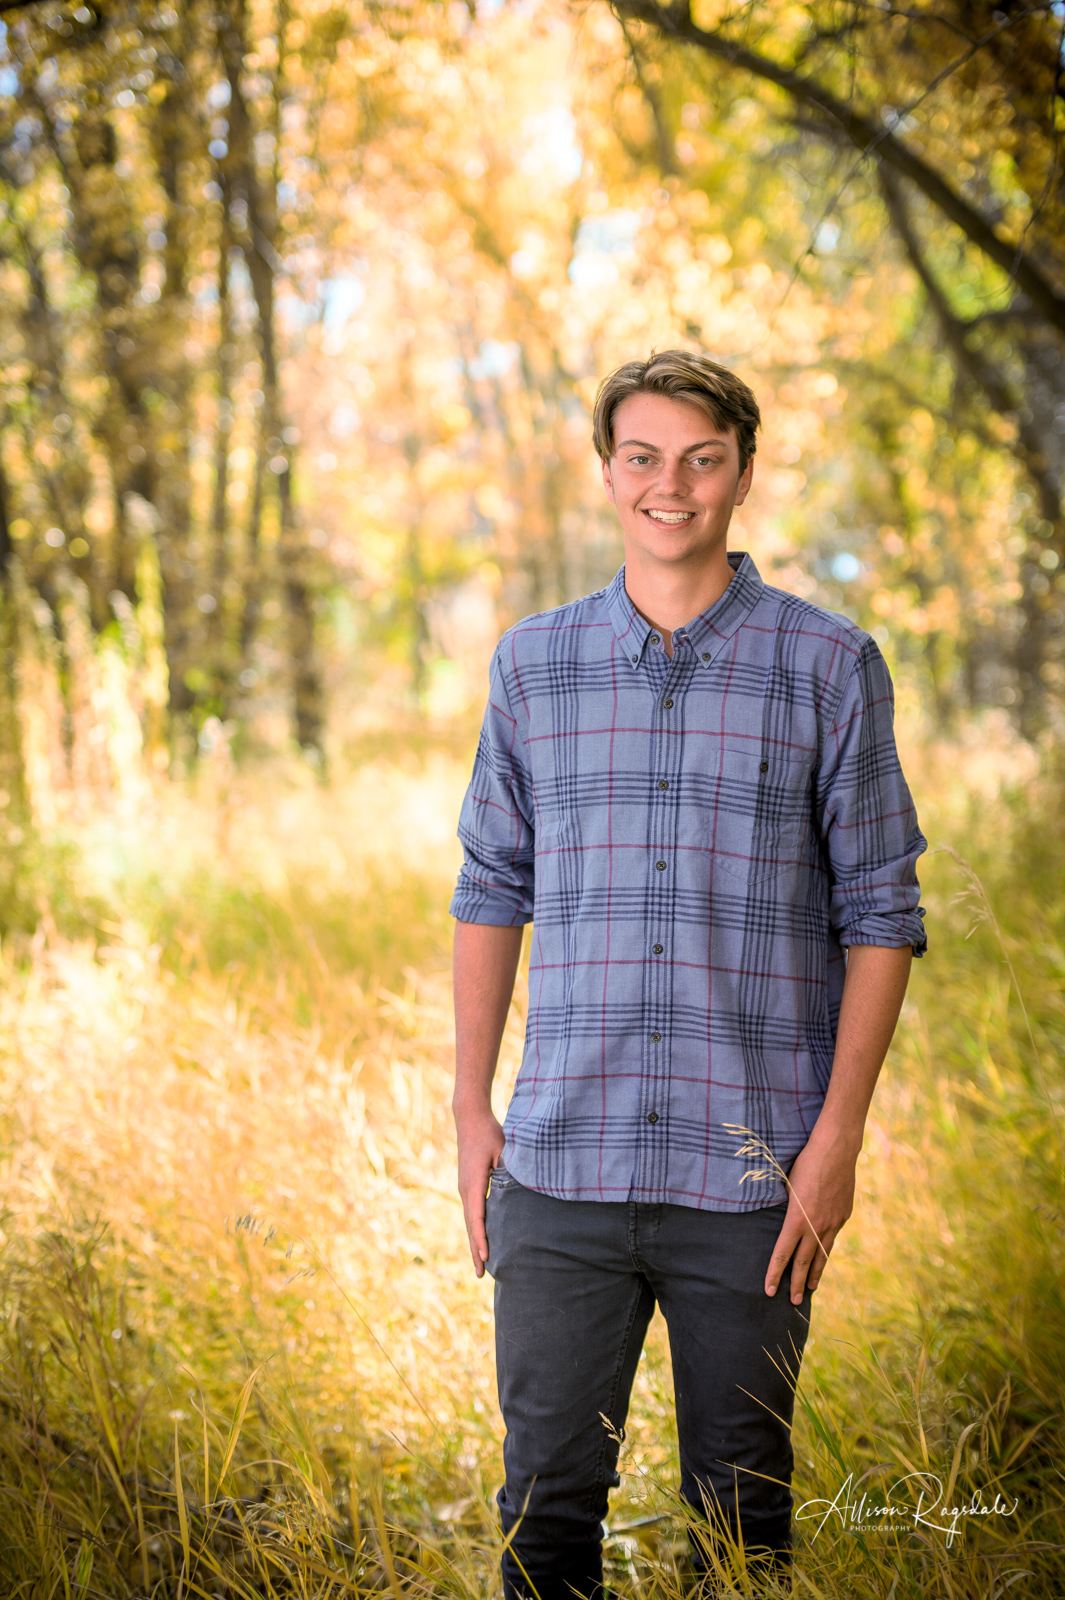 Leland Heinicke's Senior Photos